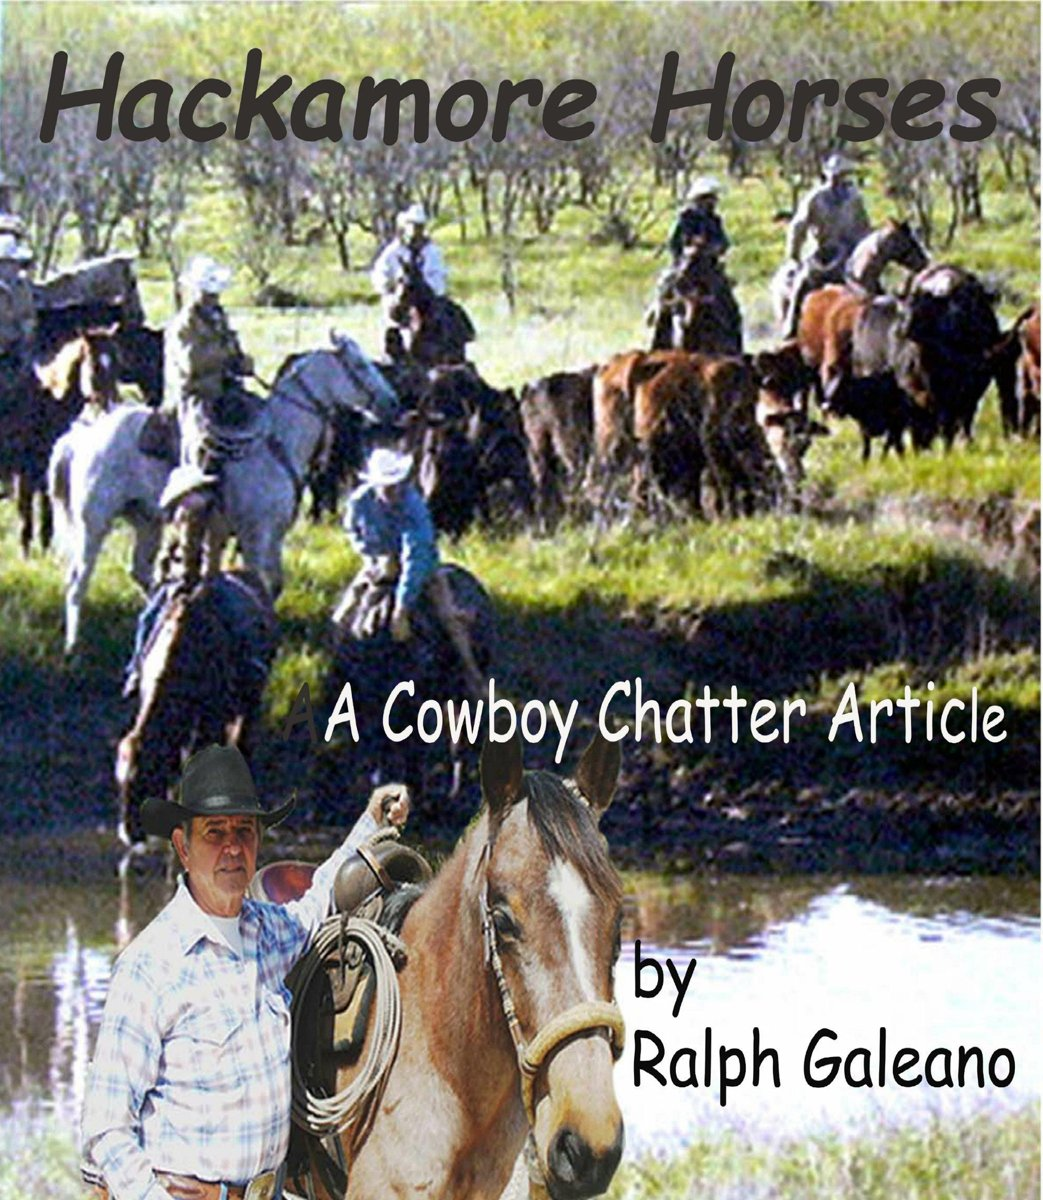 Hackamore Horses A Cowboy Chatter Article